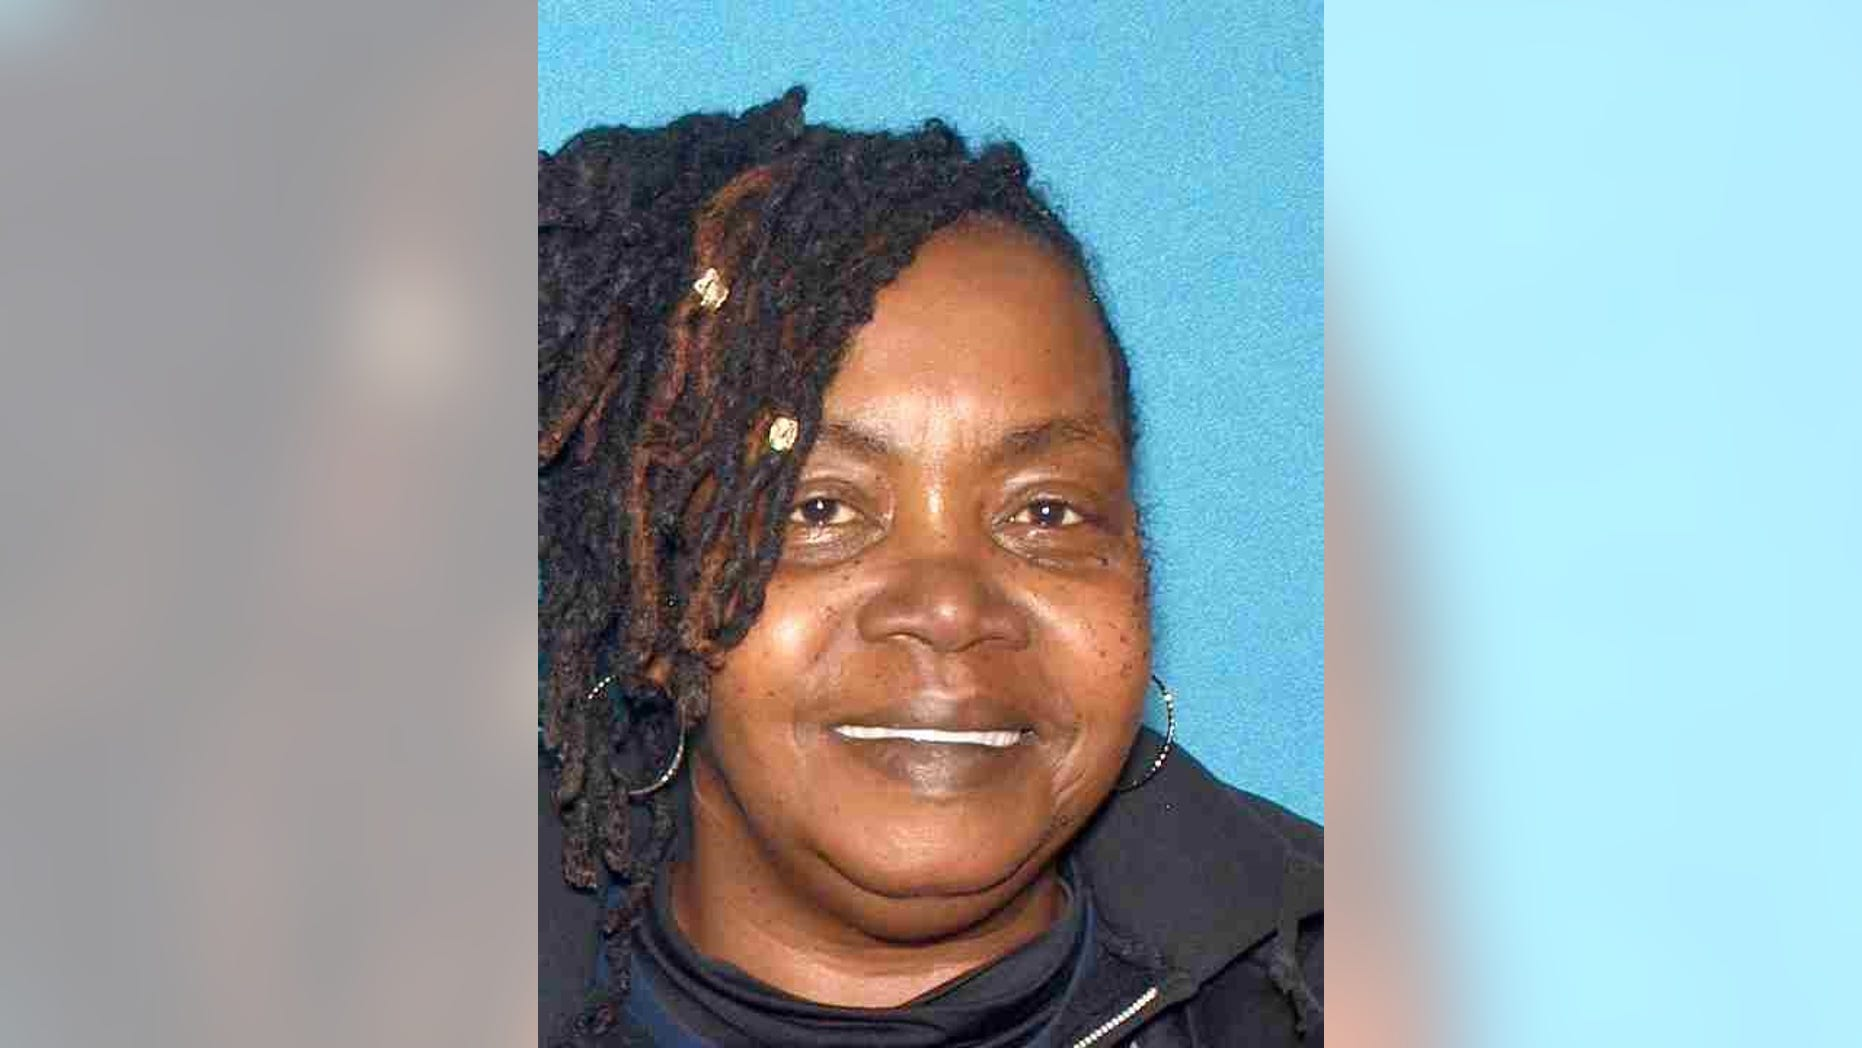 Lisa Byrd, 57, reportedly took a drug overdose while driving in New Jersey on Wednesday, police said.